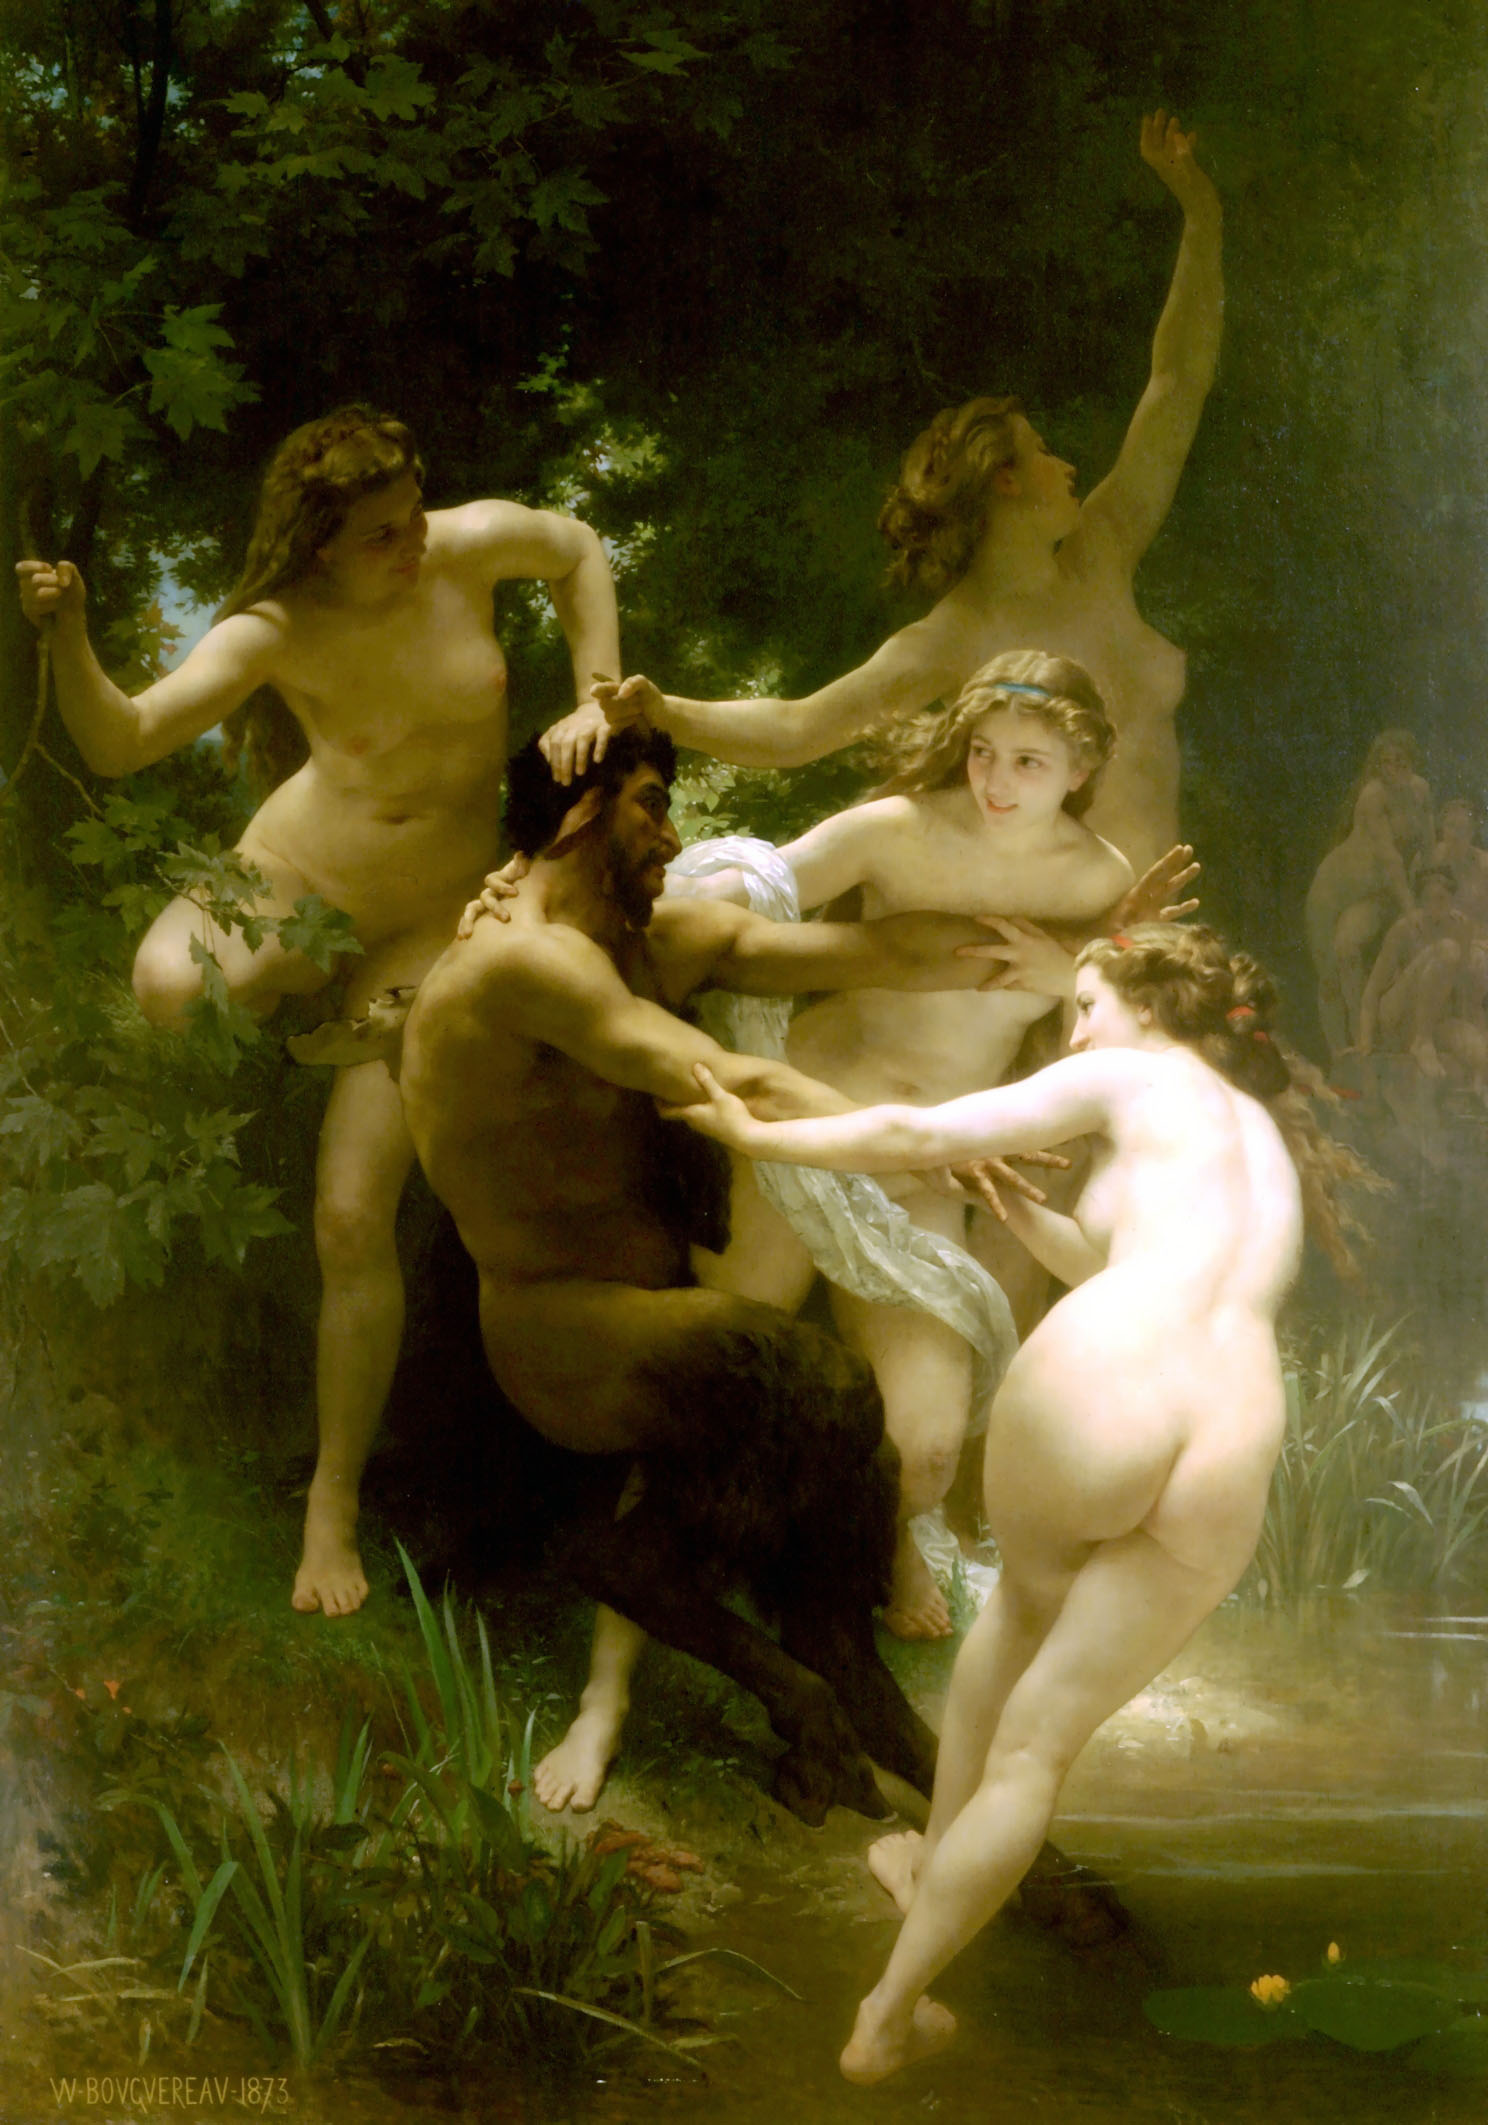 William Bouguereau (1825-1905)  Nymphes et Satyre [Nymphs and Satyr]  Oil on canvas, 1873  102 1/4 x 70 3/4 inches (260 x 180 cm)  Sterling and Francine Clark Art Institute, Williamstown